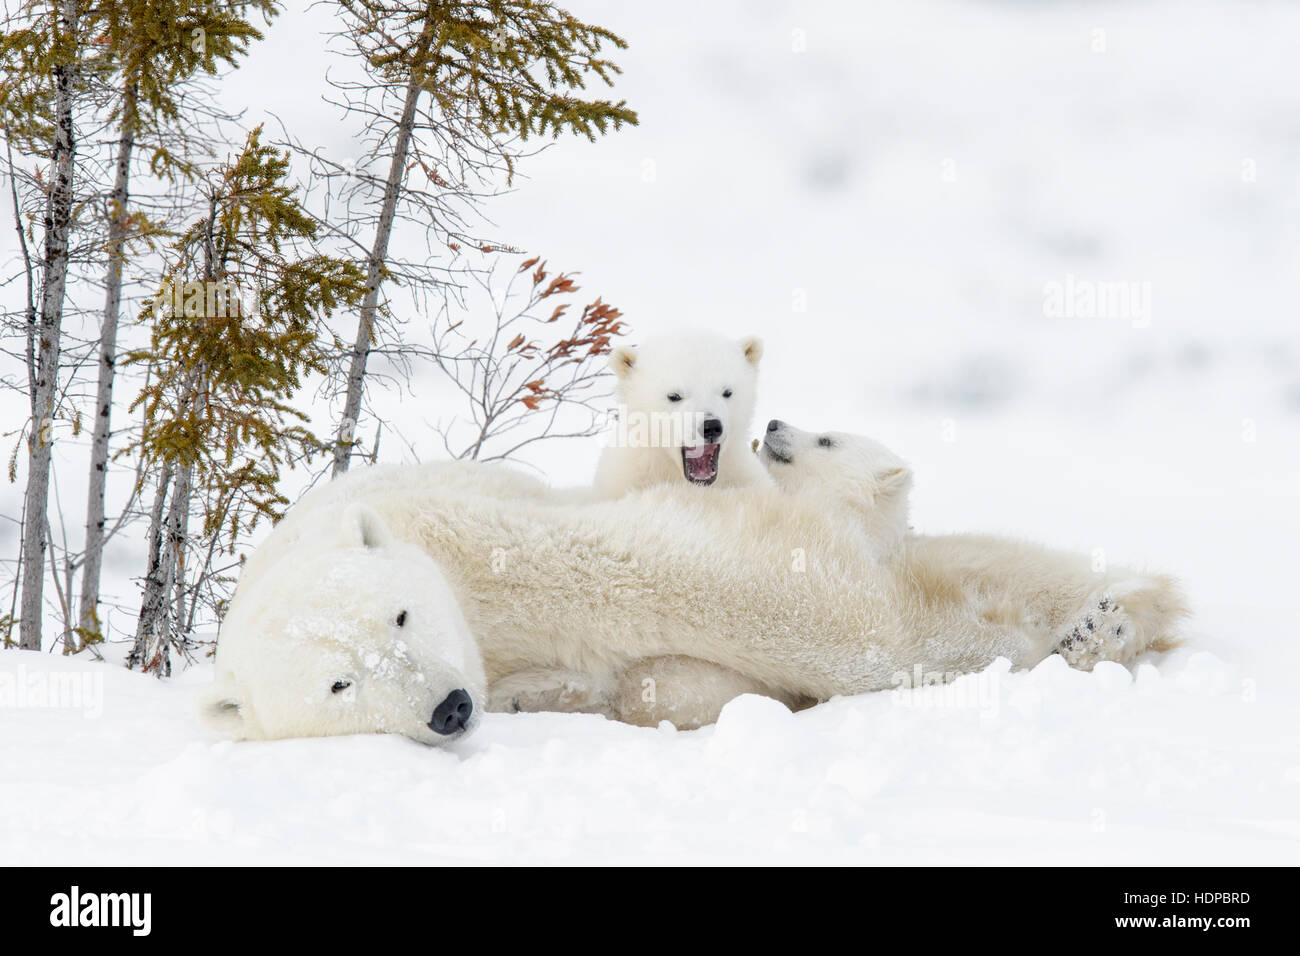 Polar bear mother (Ursus maritimus) with two cubs, Wapusk National Park, Manitoba, Canada - Stock Image